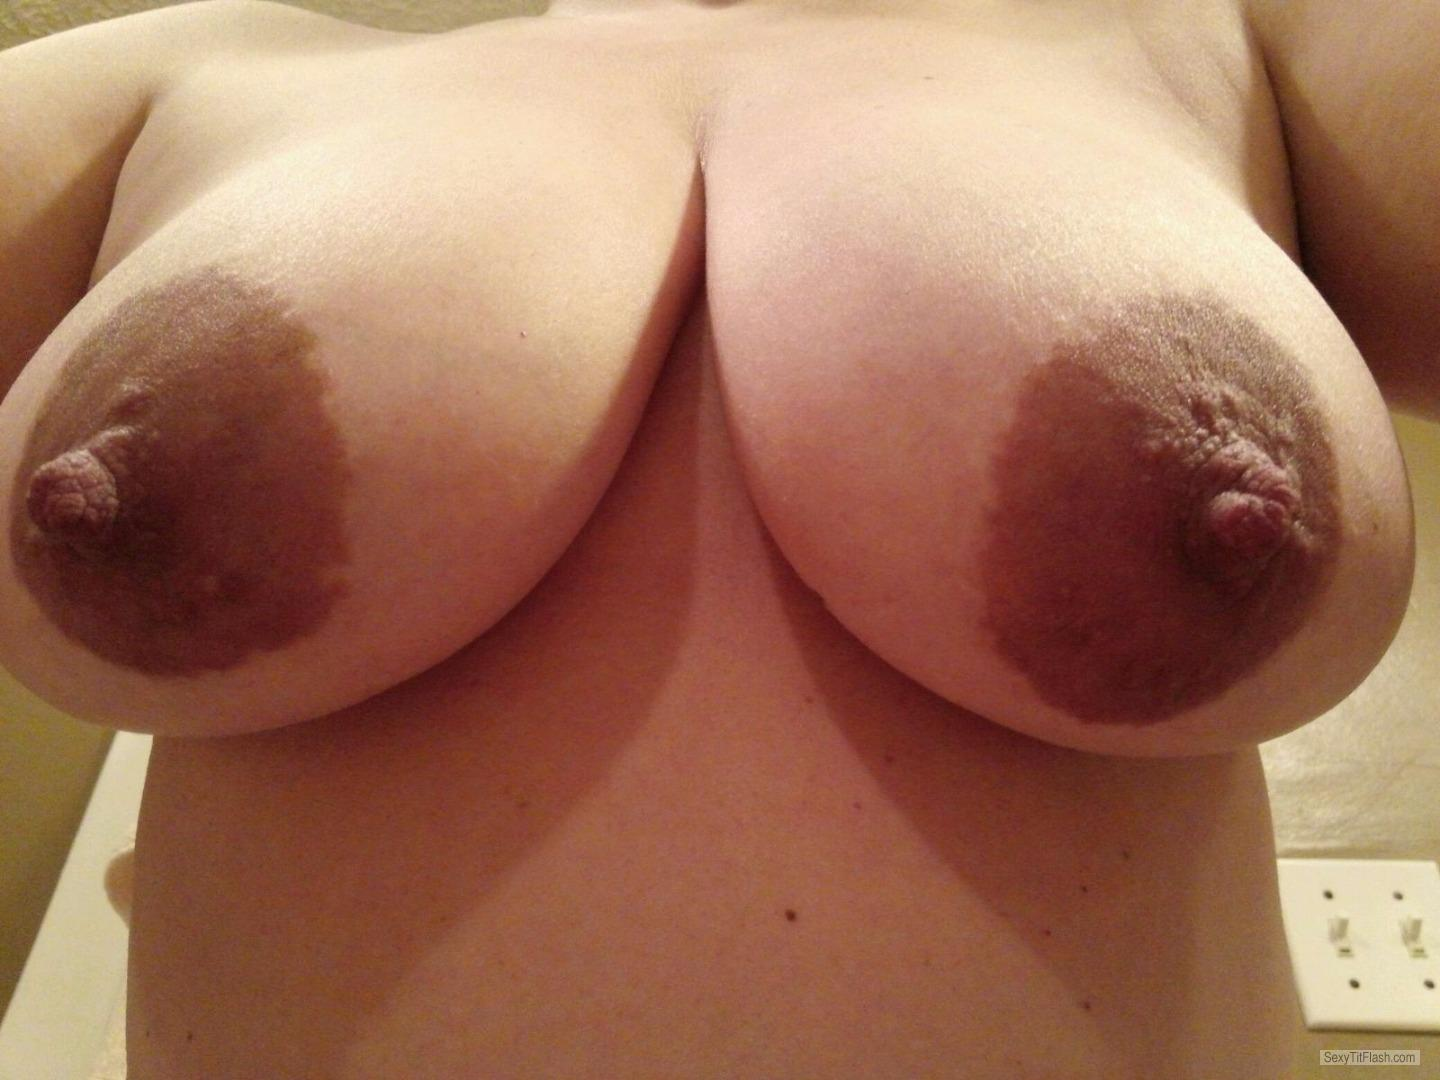 My Big Tits Selfie by Hot Texas Wifey